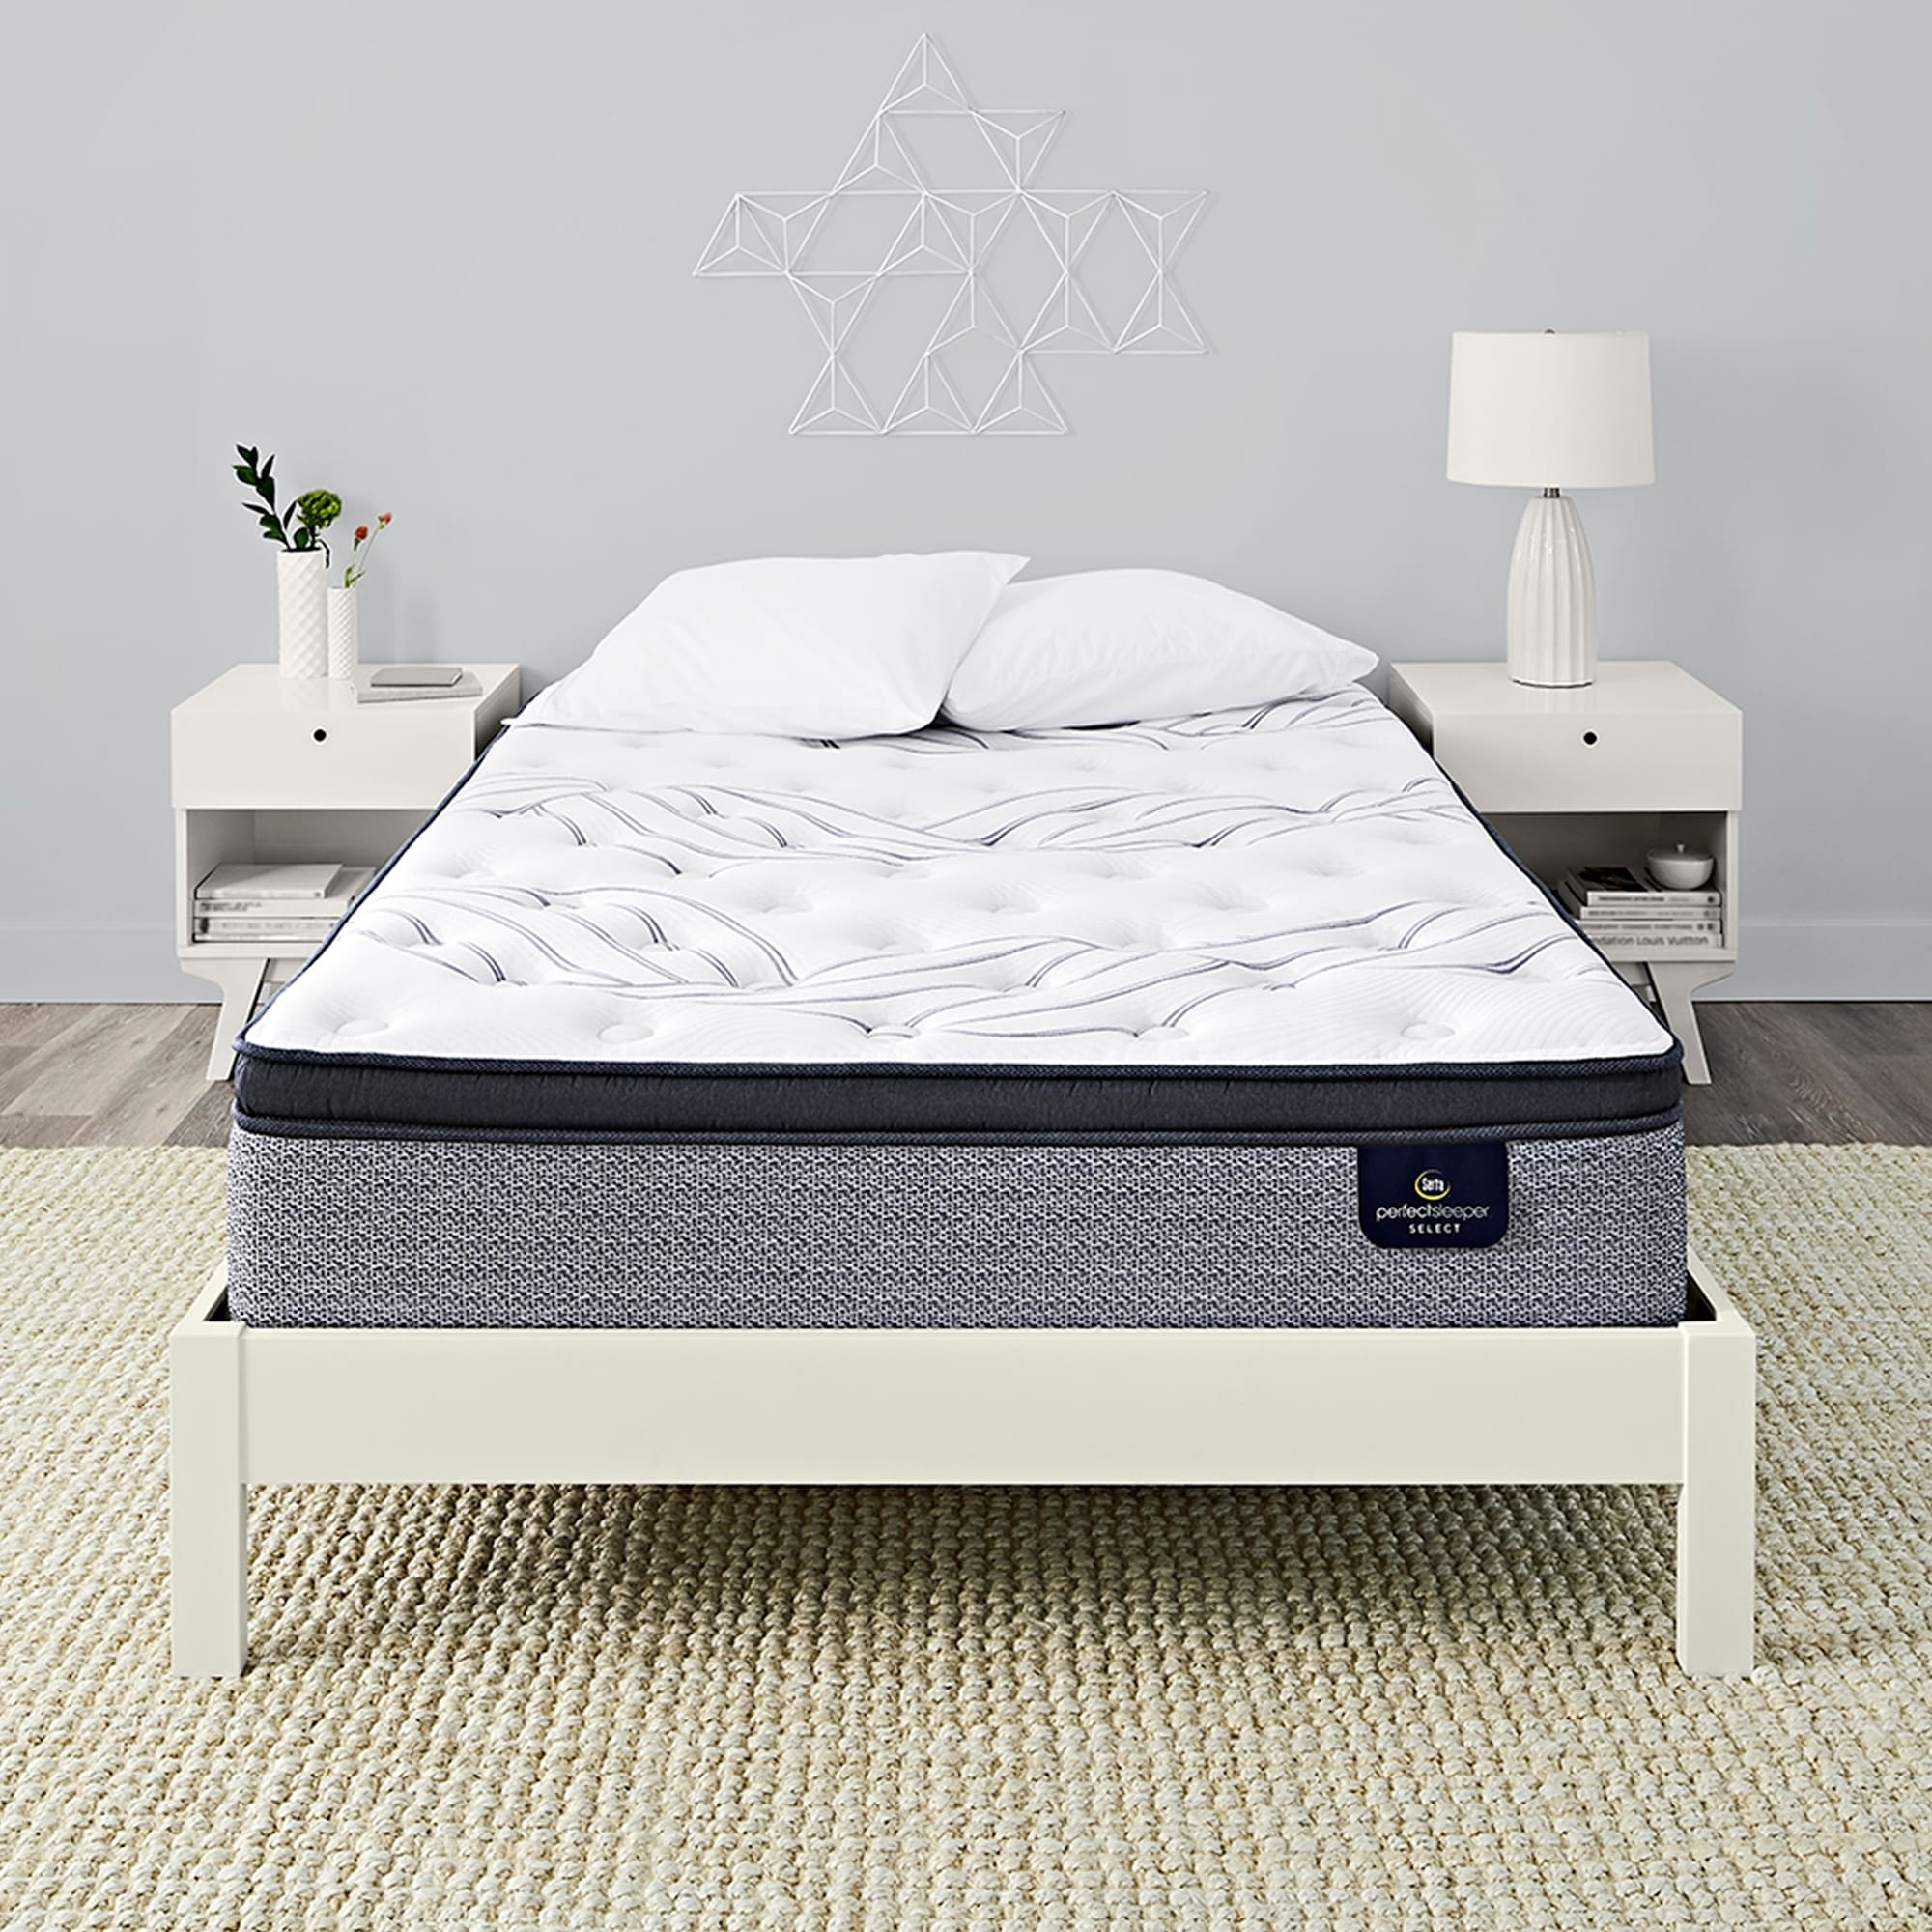 Bedroom Mattress Buy Mattresses By Size Type Brands Online At Overstock Our